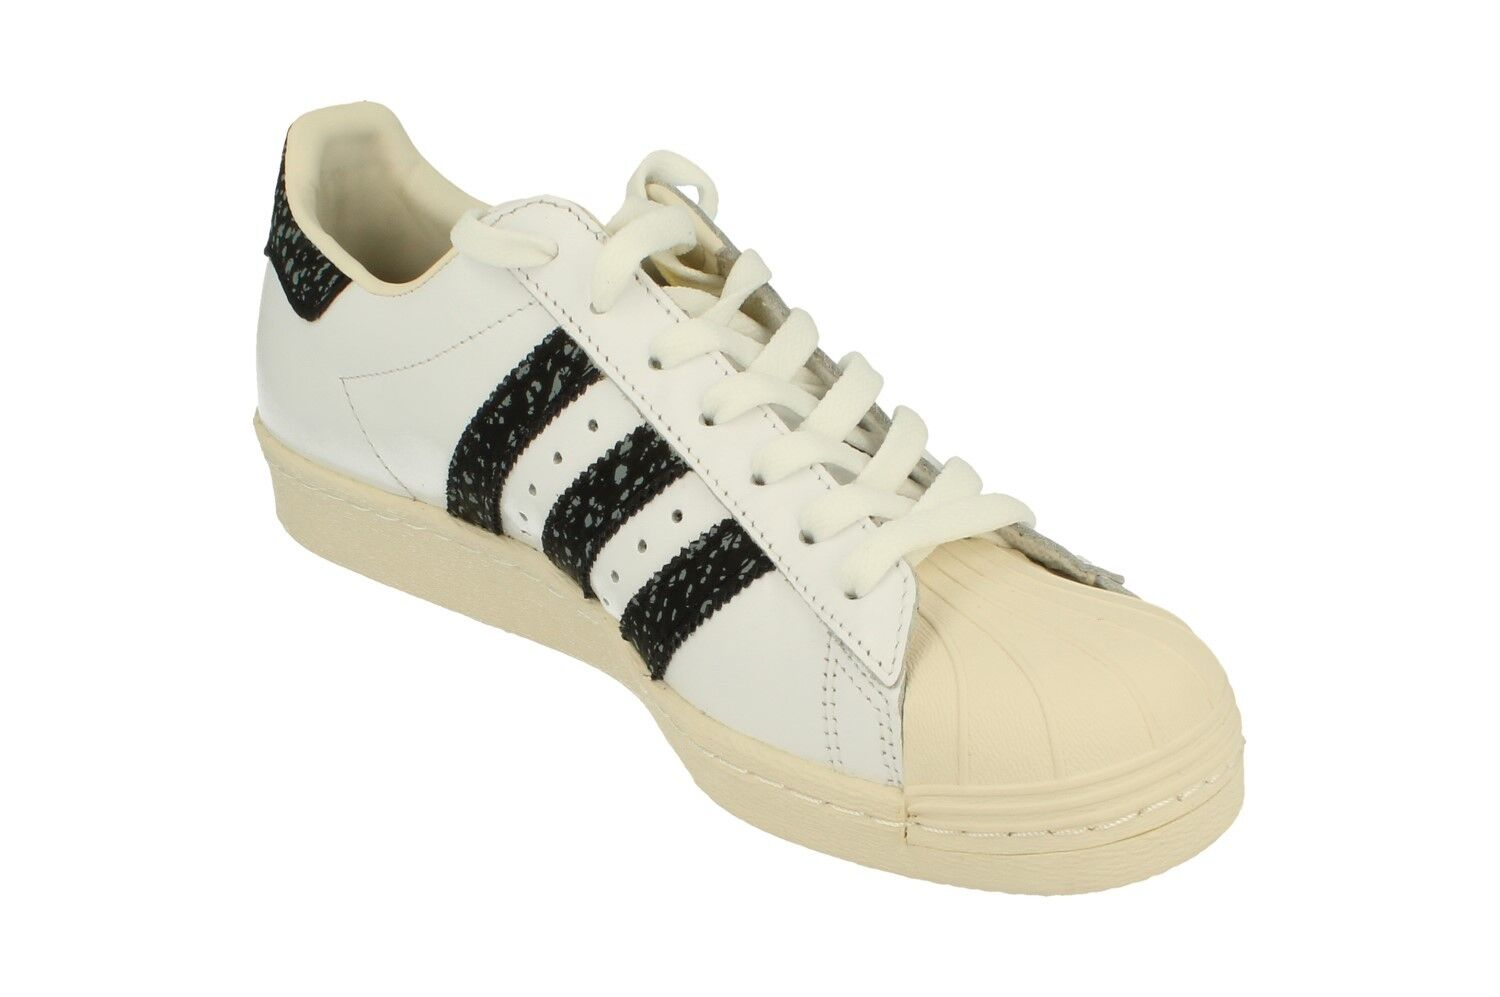 Adidas Originals Superstar 80S Mens Trainers Trainers Trainers Sneakers S75847 6cf93b